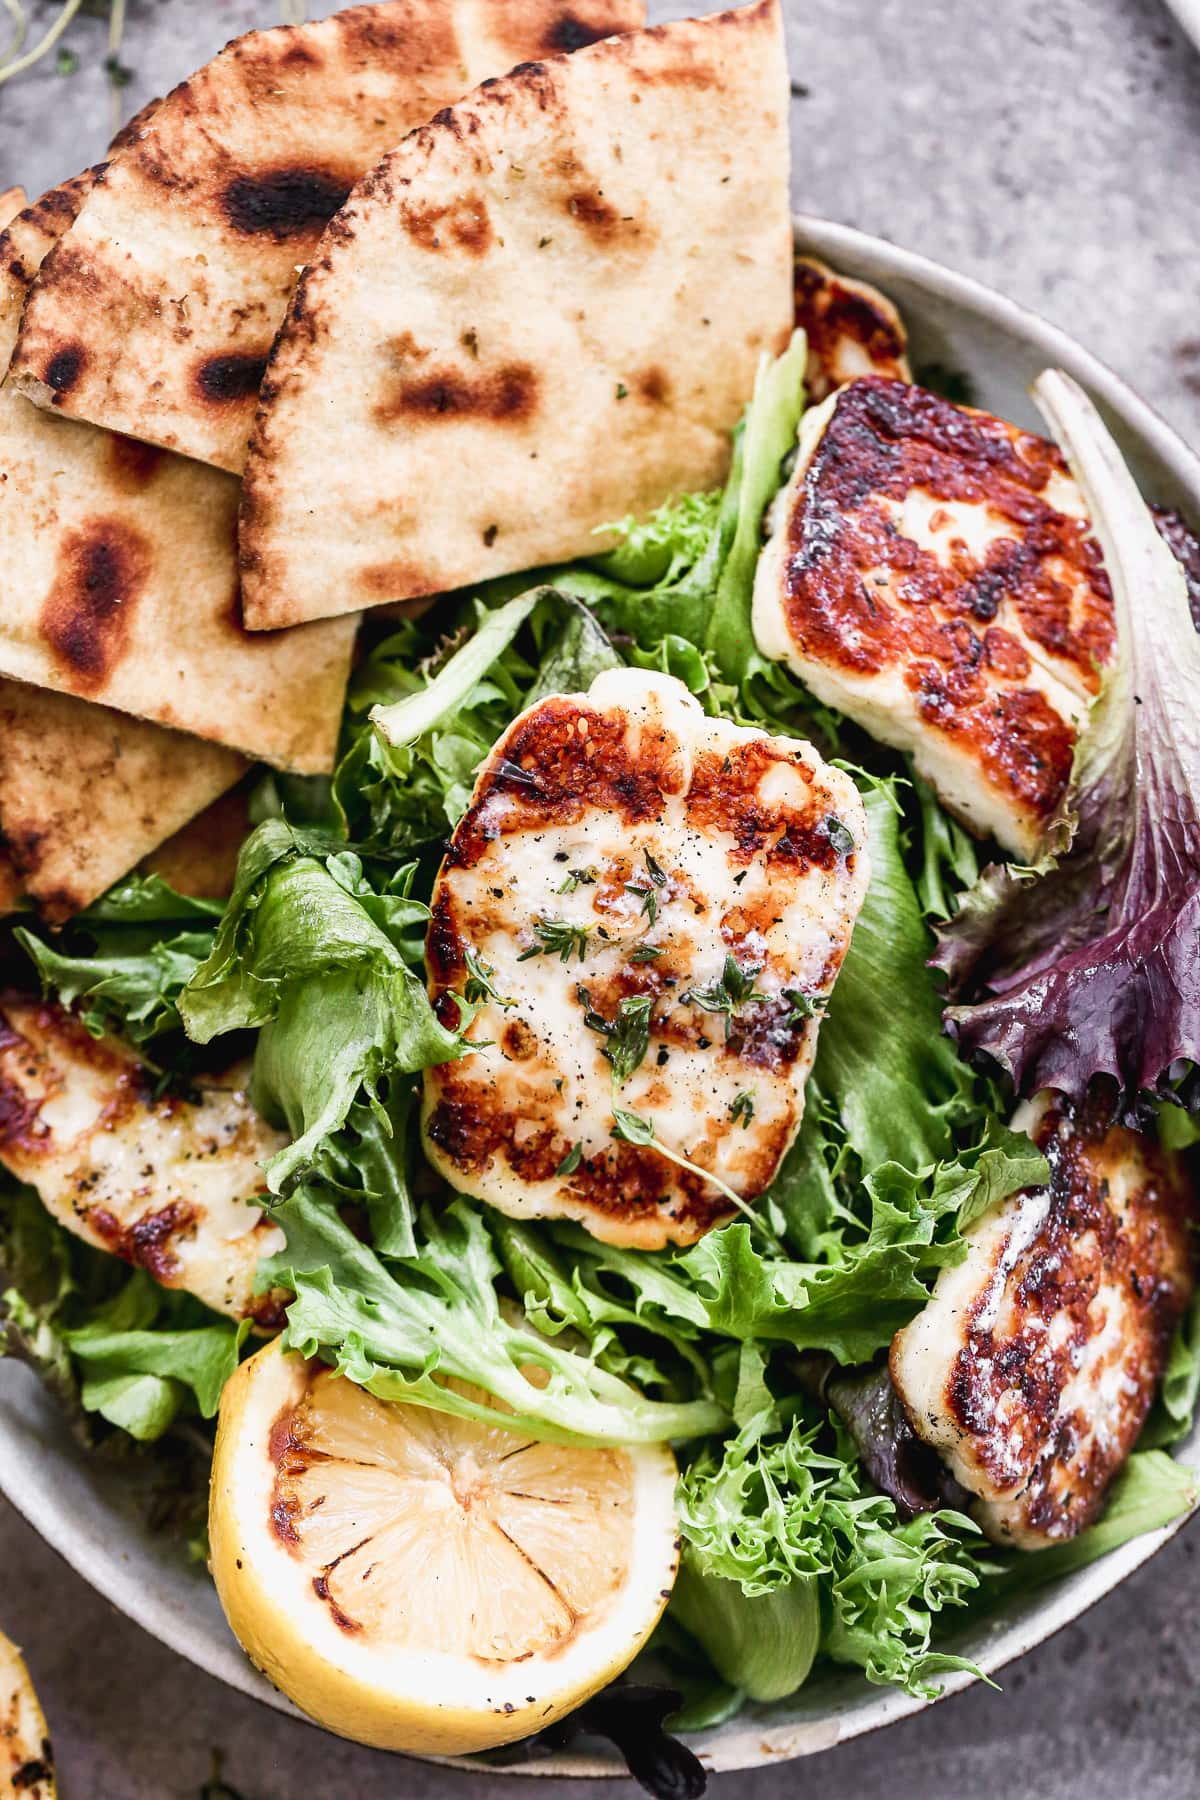 grilled halloumi cheese salad on on a plate